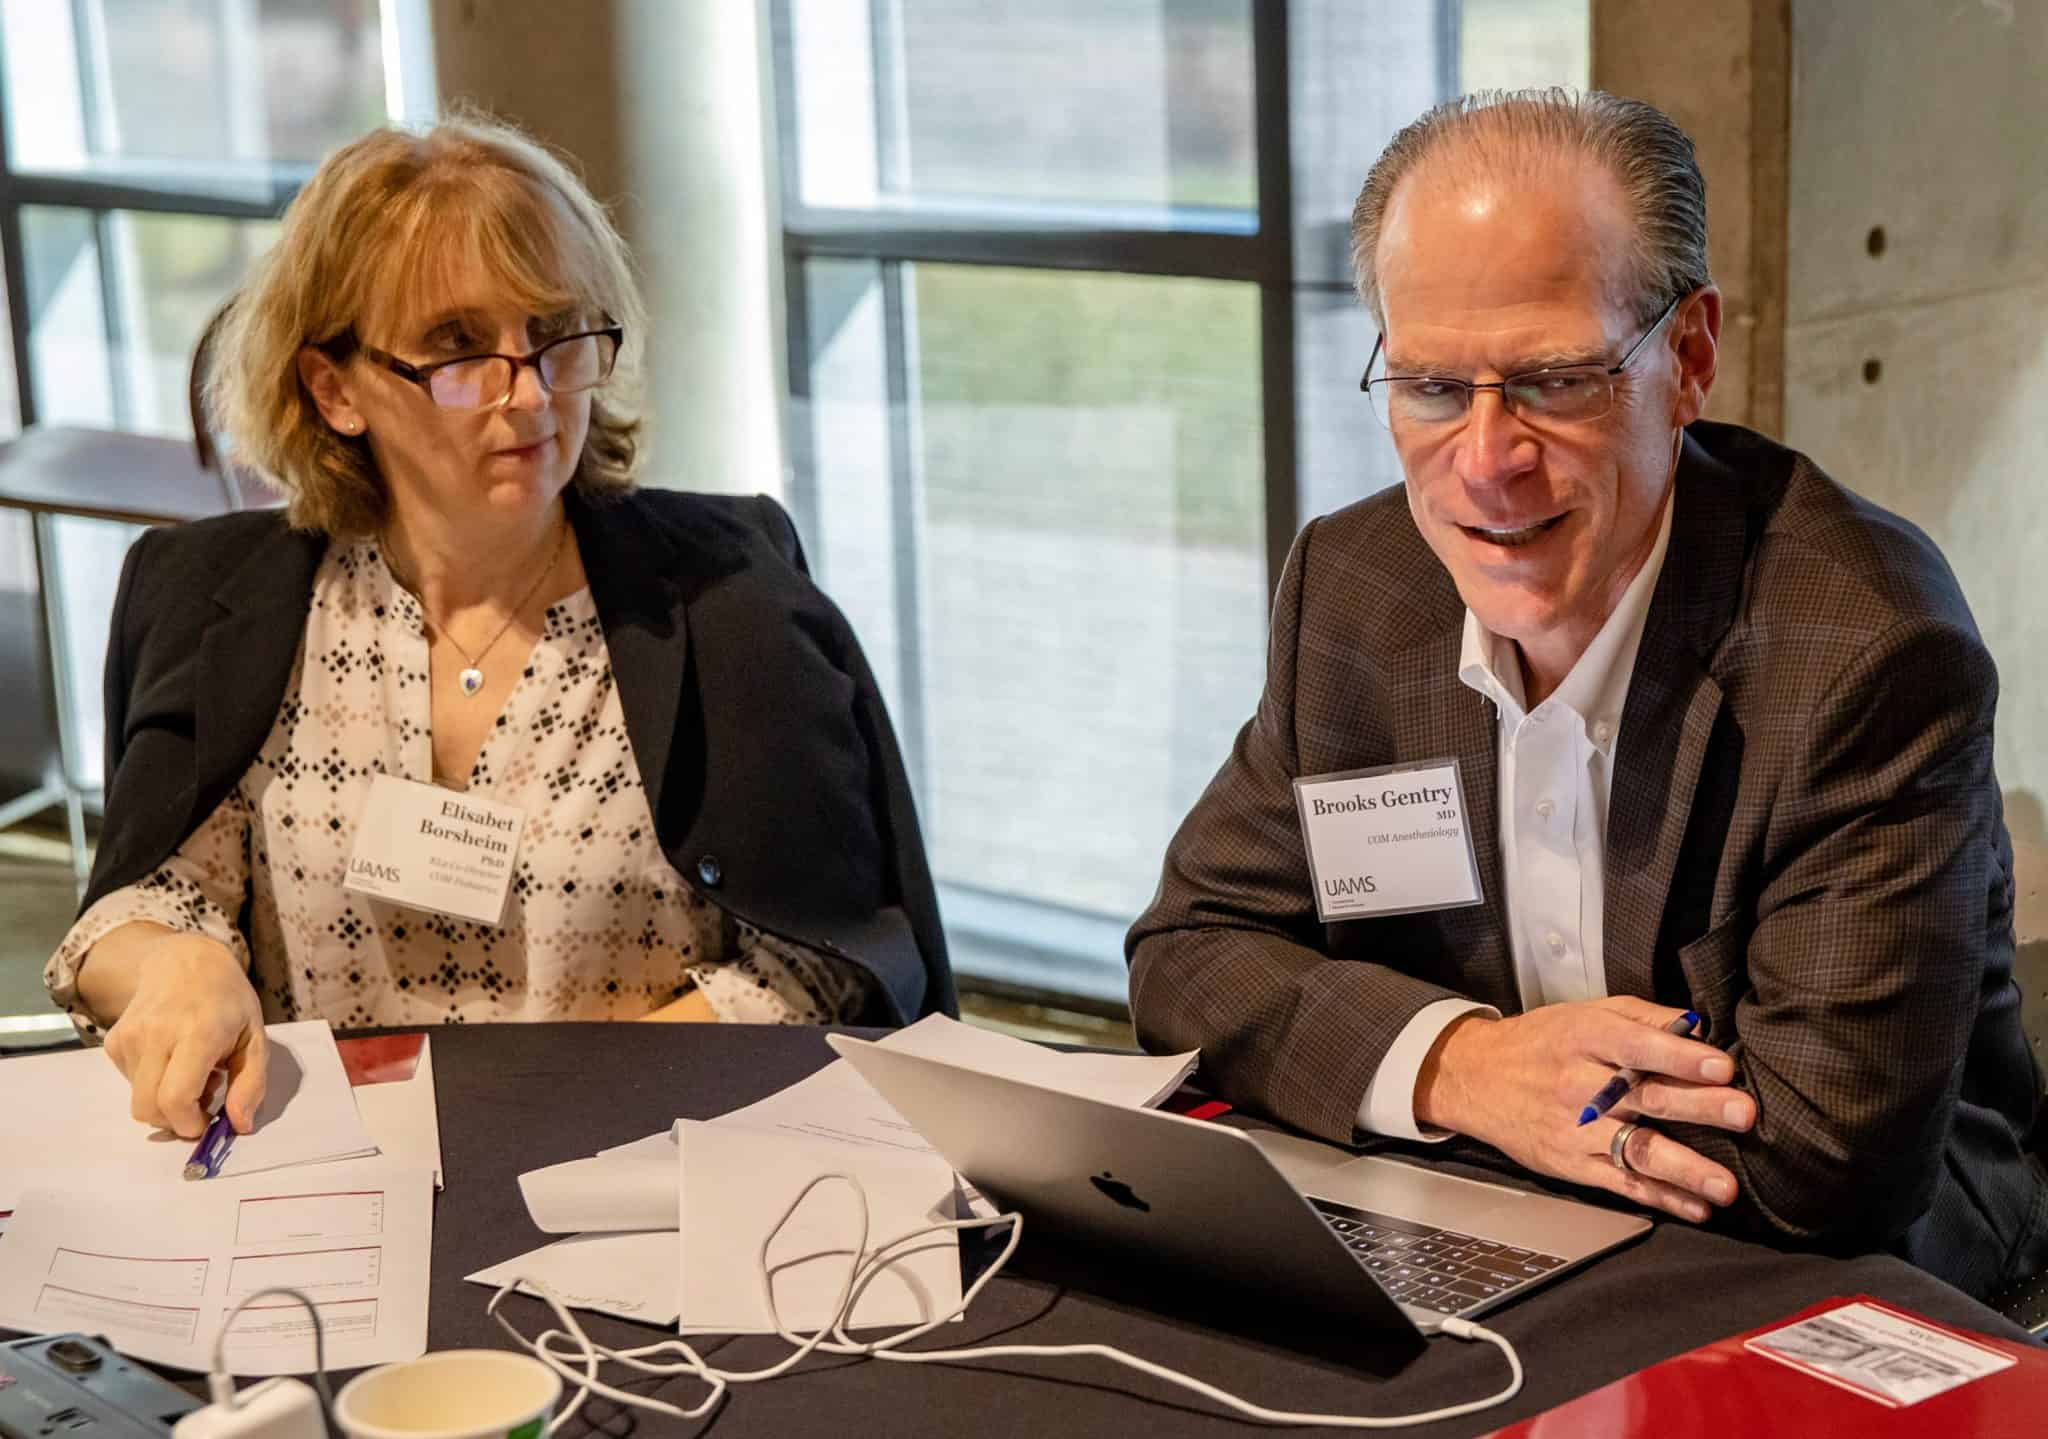 Elisabet Borsheim, Ph.D., and Brooks Gentry, M.D., co-leaders of the KL2 Program, here at the UAMS Translational Research Institute's fall 2019 Planning Retreat.